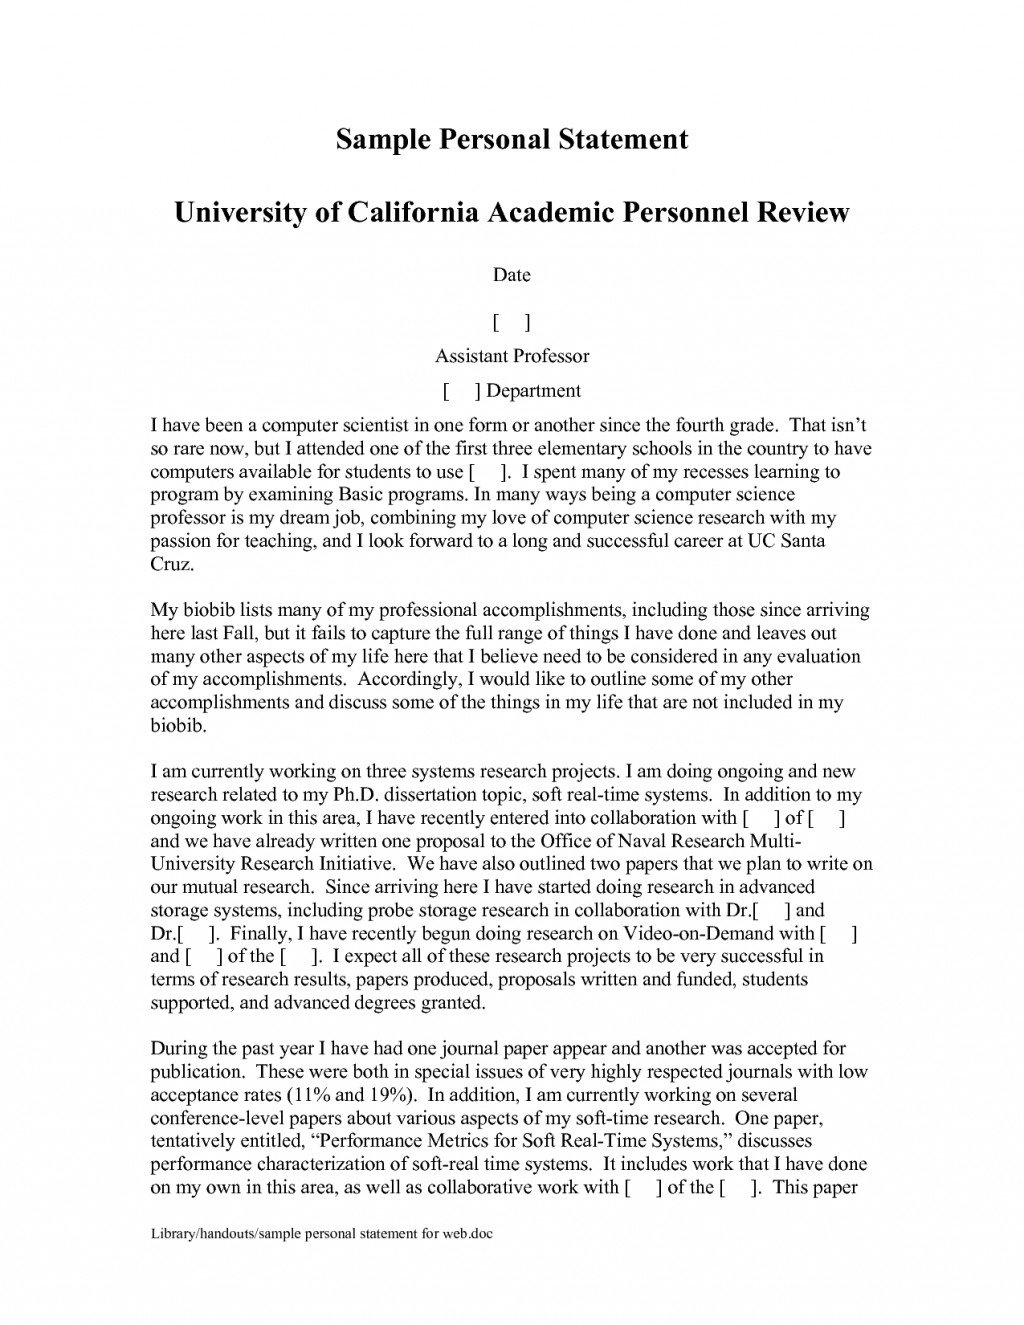 002 Essay Example Diversity Graduate Personal Statement Template Remarkable Law School Uw Examples Medical Large